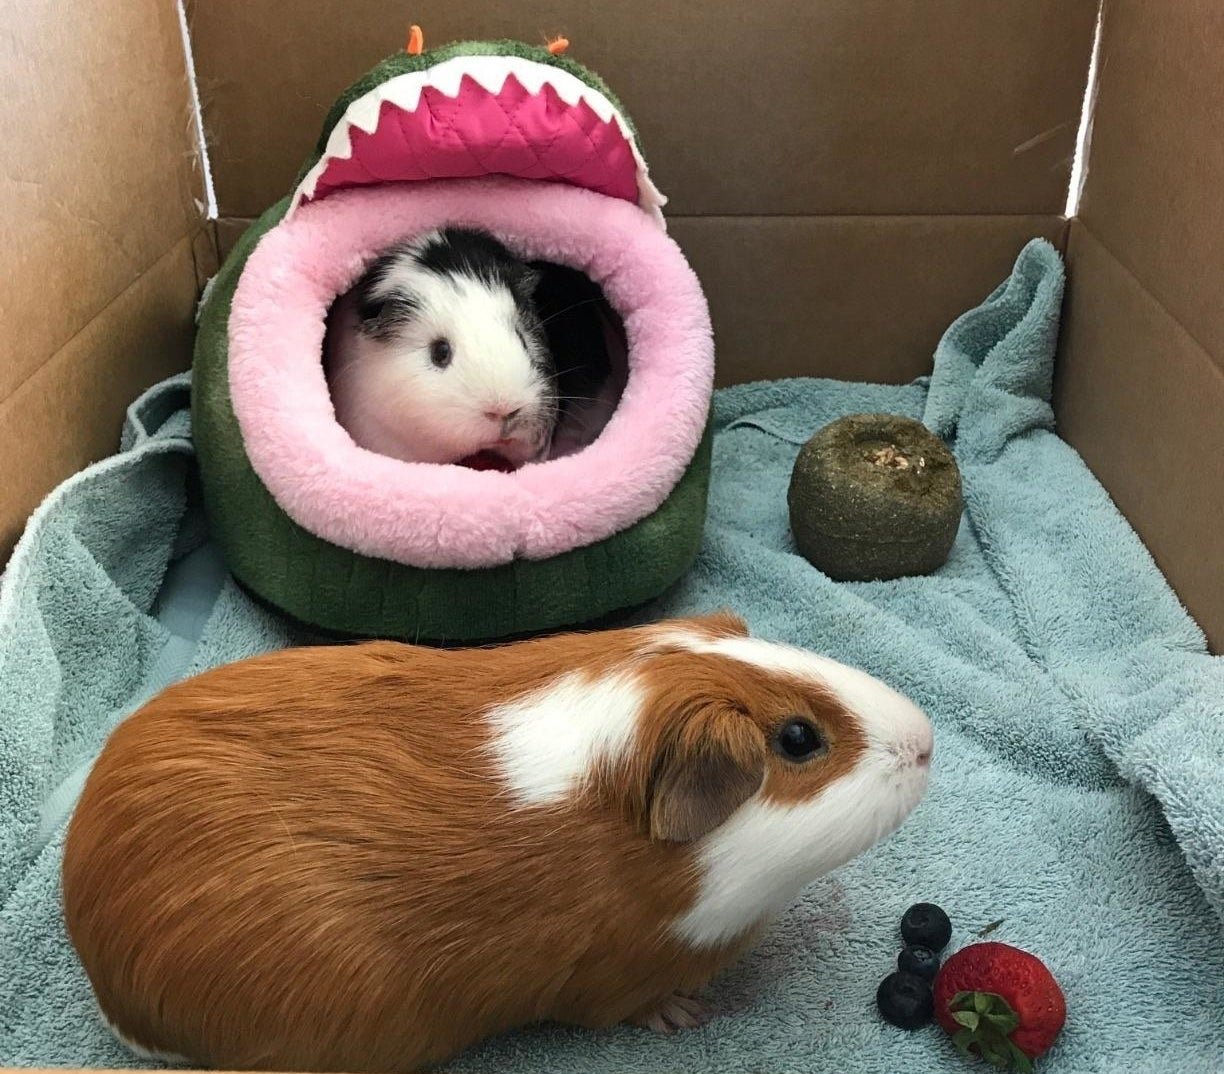 Guinea pigs in a cage with the crocodile mouth-shaped bed